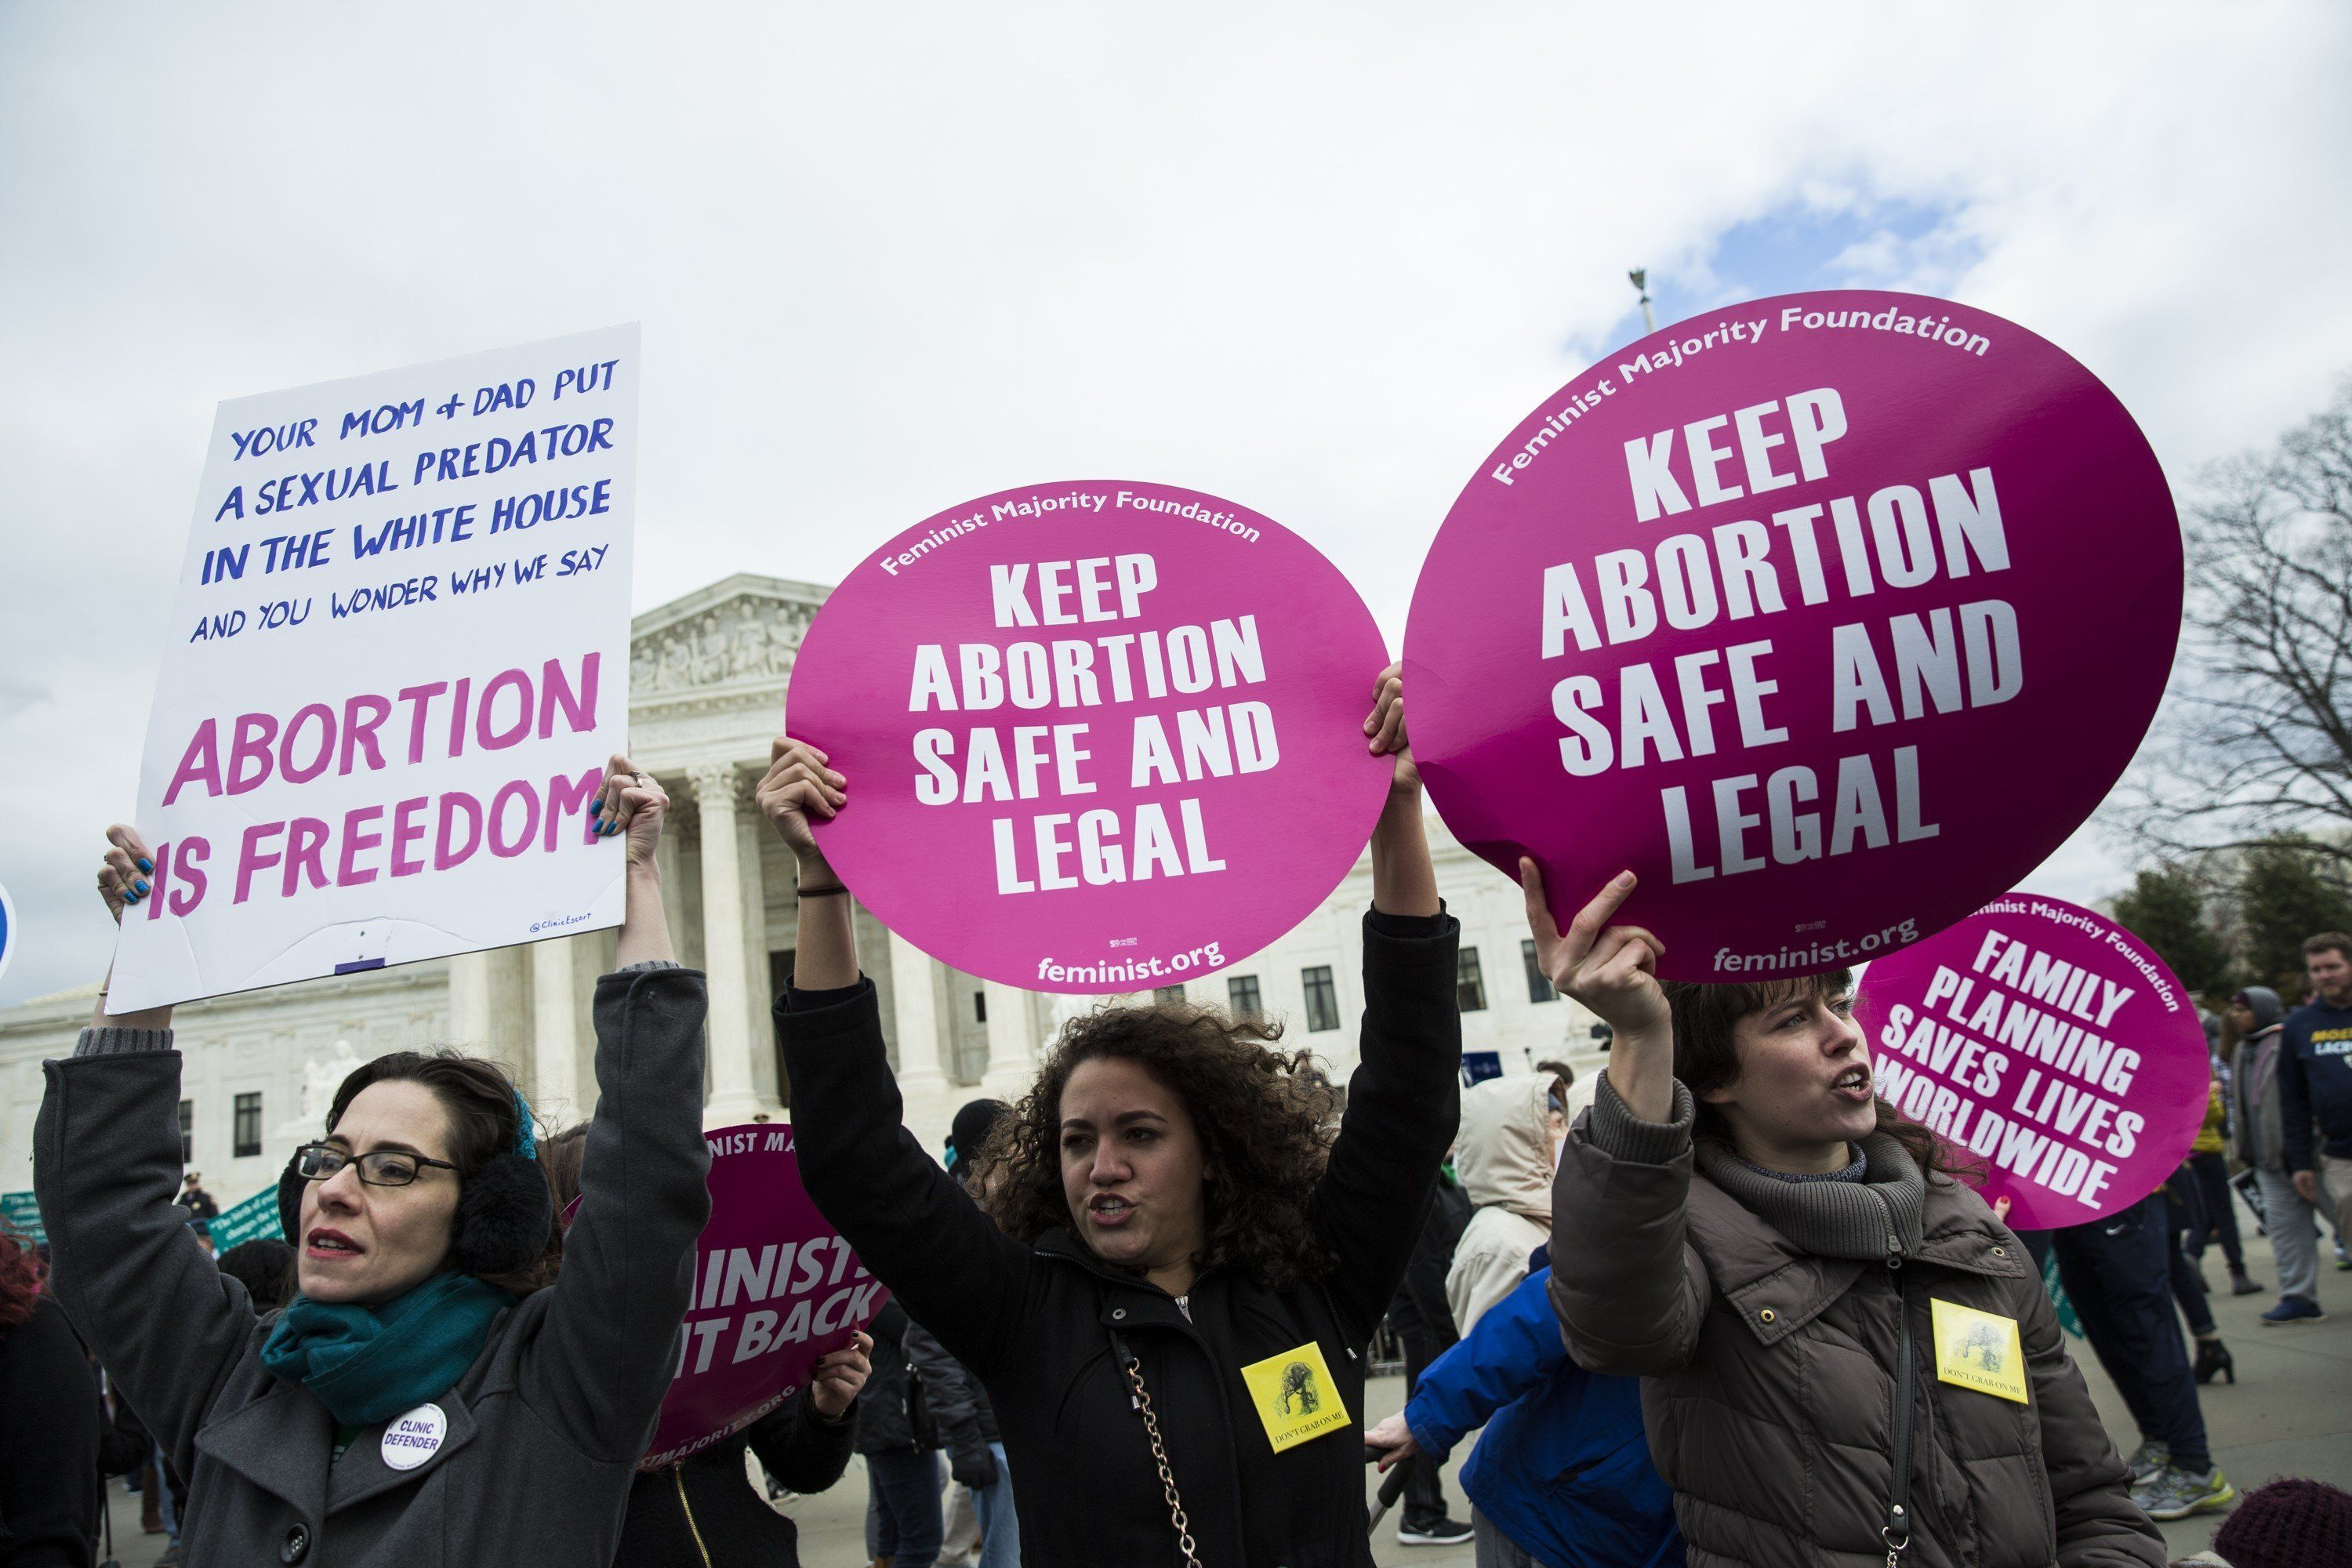 Pro-choice advocates counter protest at the March for Life in Washington D.C. last month.